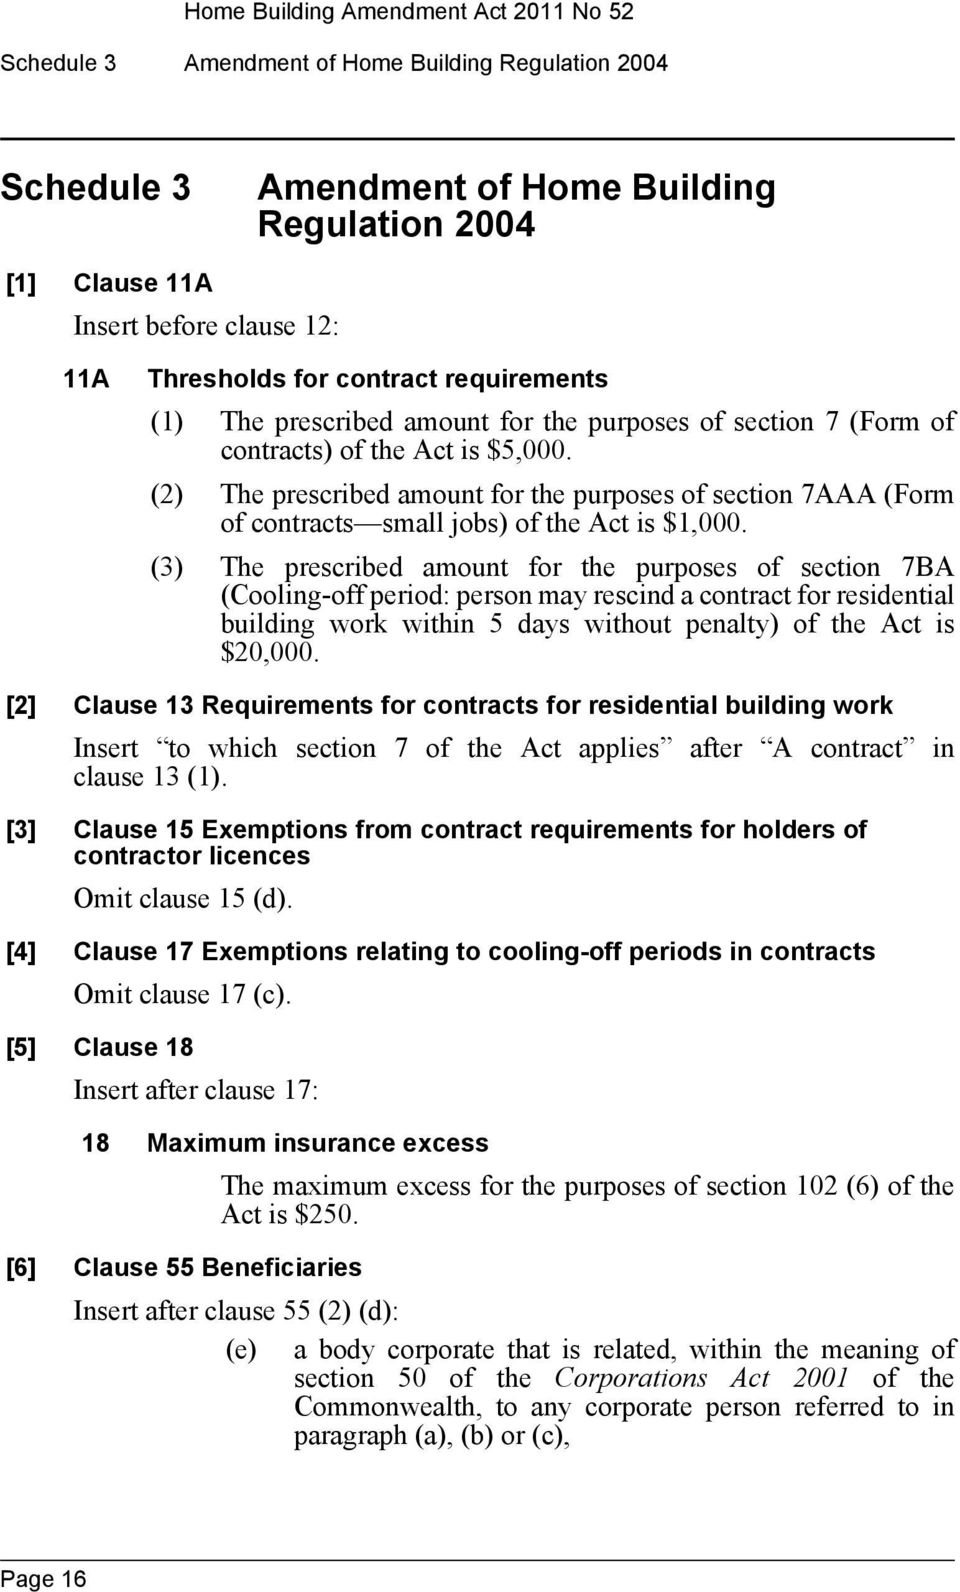 (2) The prescribed amount for the purposes of section 7AAA (Form of contracts small jobs) of the Act is $1,000.